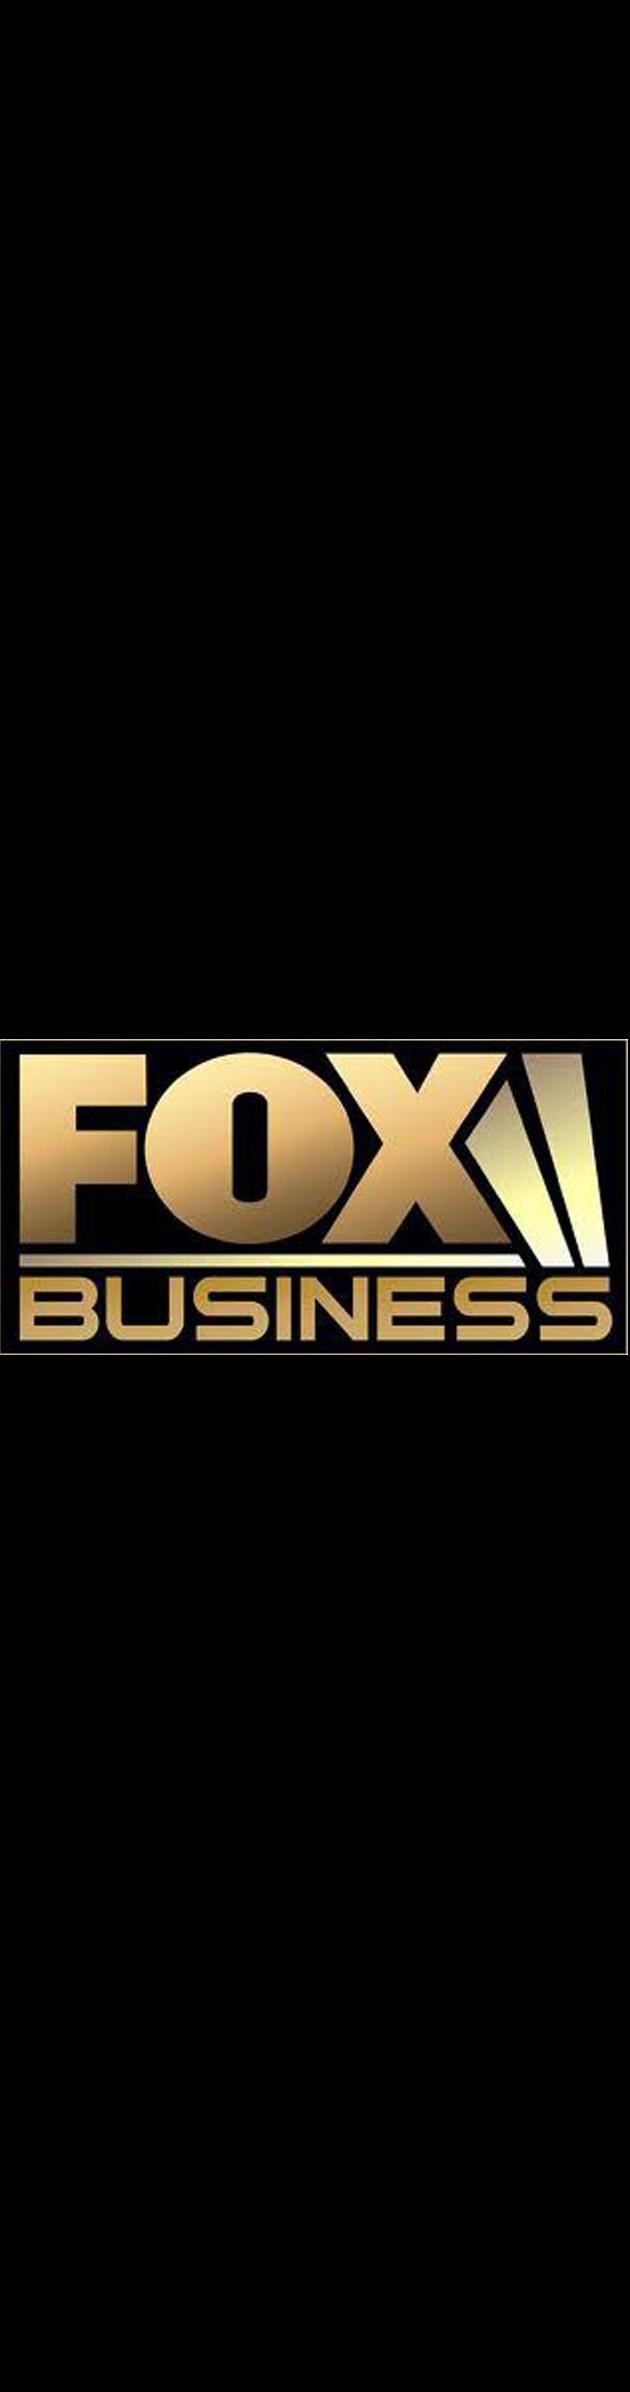 Fox Business Network Announces Next GOP Debate Date